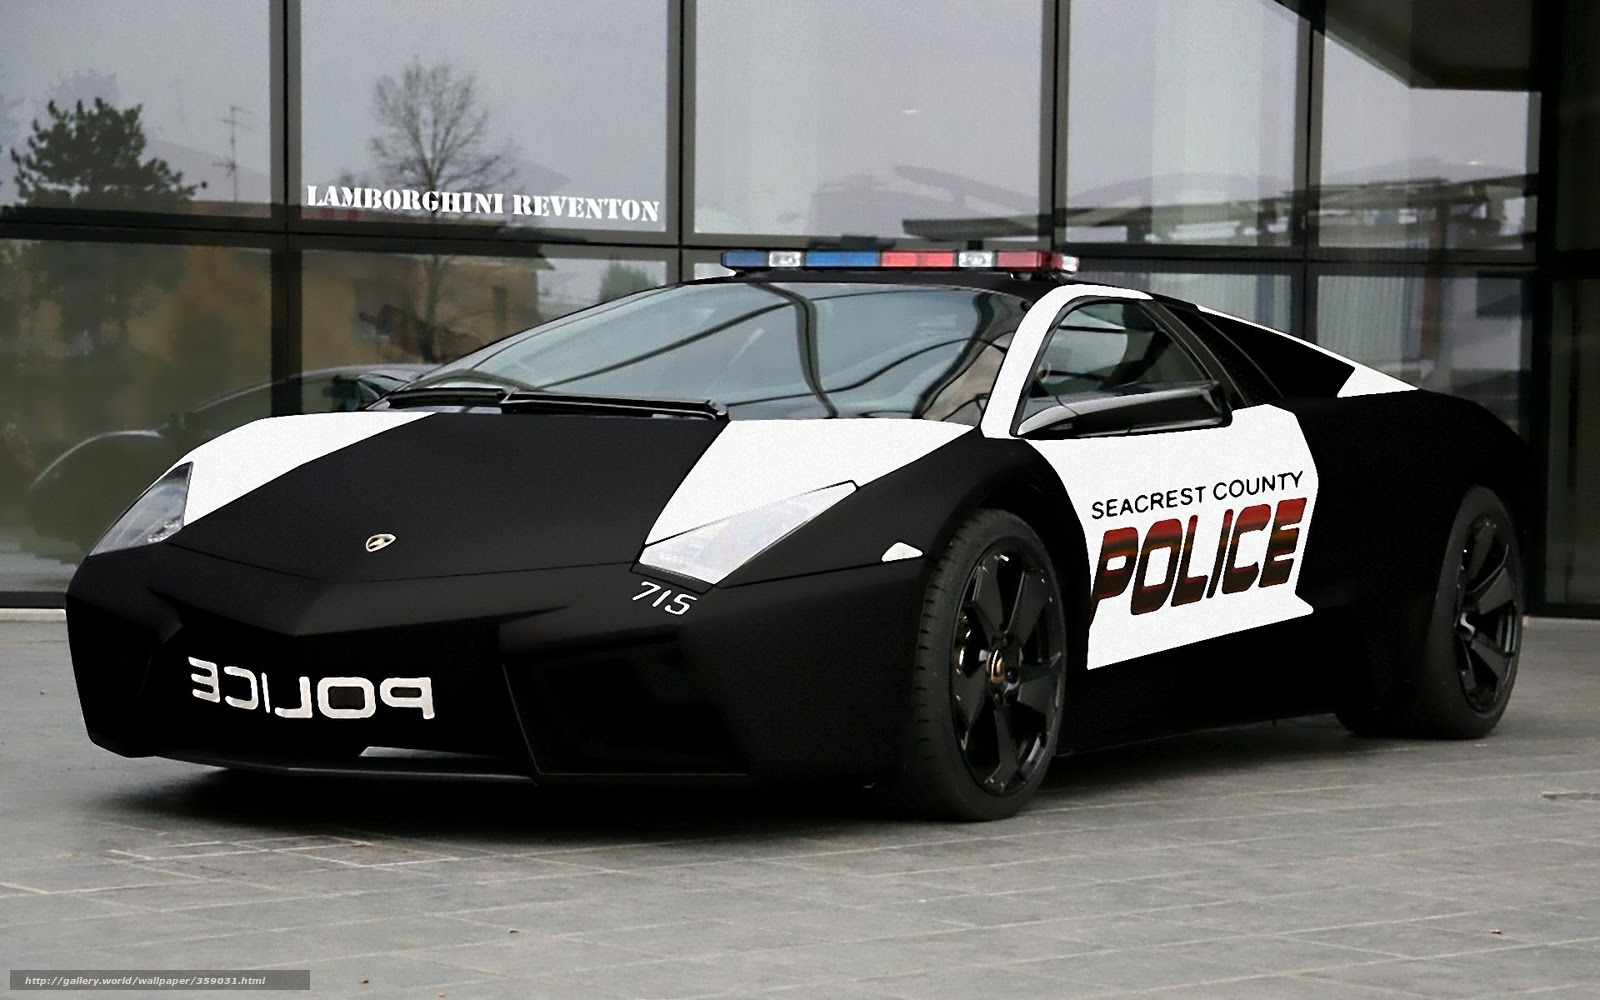 Lamborghini Aventador Police Car HalfScale Cardboard Model Video